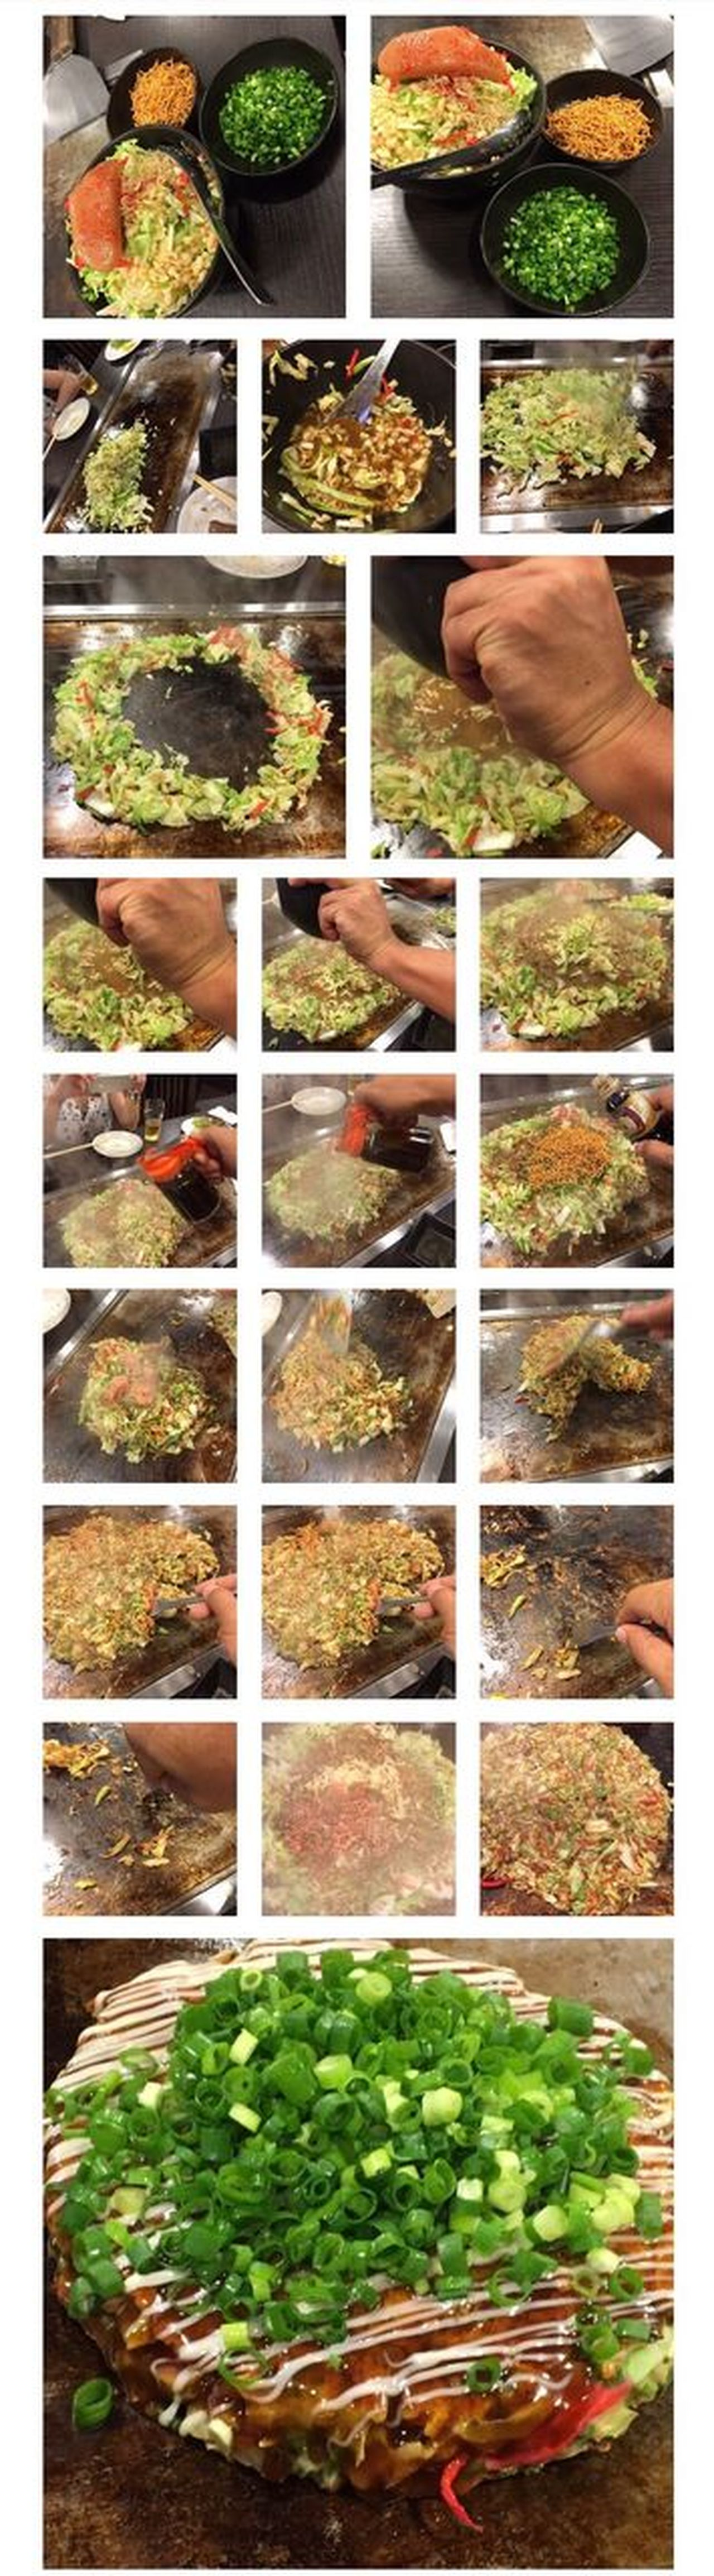 How To Make Japanese Food Monjya Okonomiyaki Vegetable In A Row Variation Shelf Agriculture Food And Drink No People Choice Indoors  Growth Day Grass Freshness Collage Nature Multiple Image Food